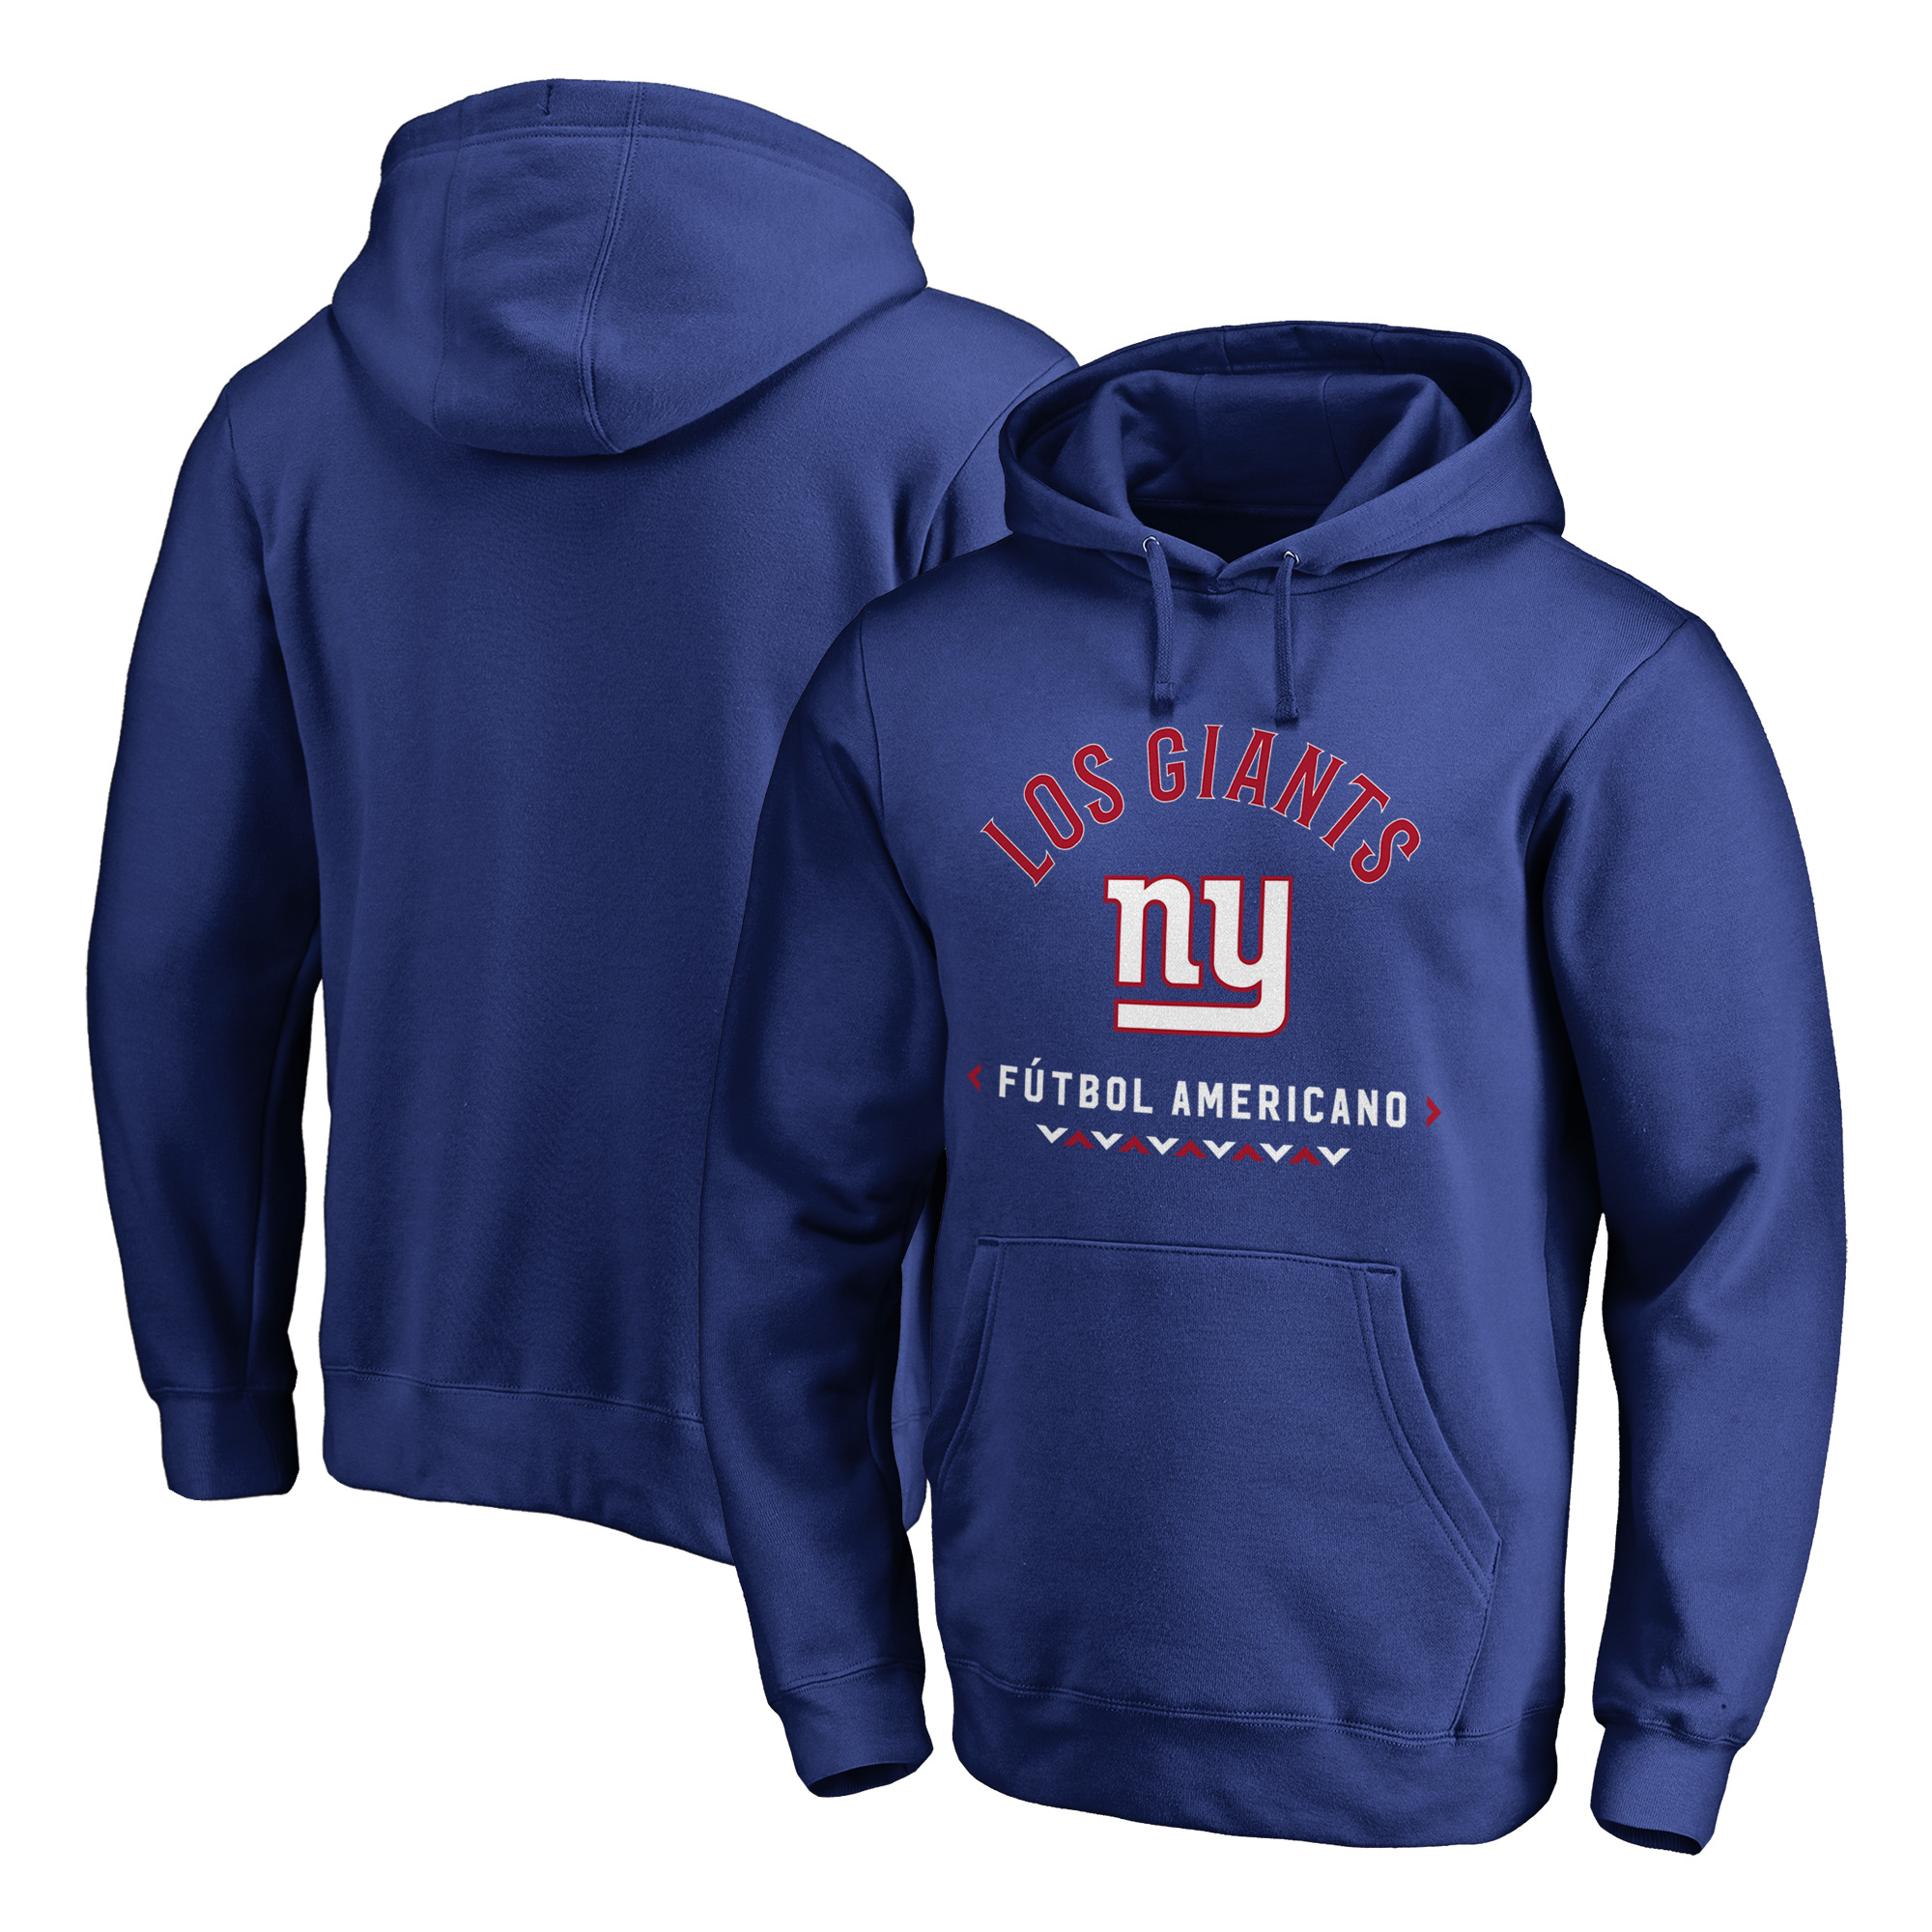 New York Giants NFL Pro Line by Fanatics Branded Futbol Americano Pullover Hoodie - Royal